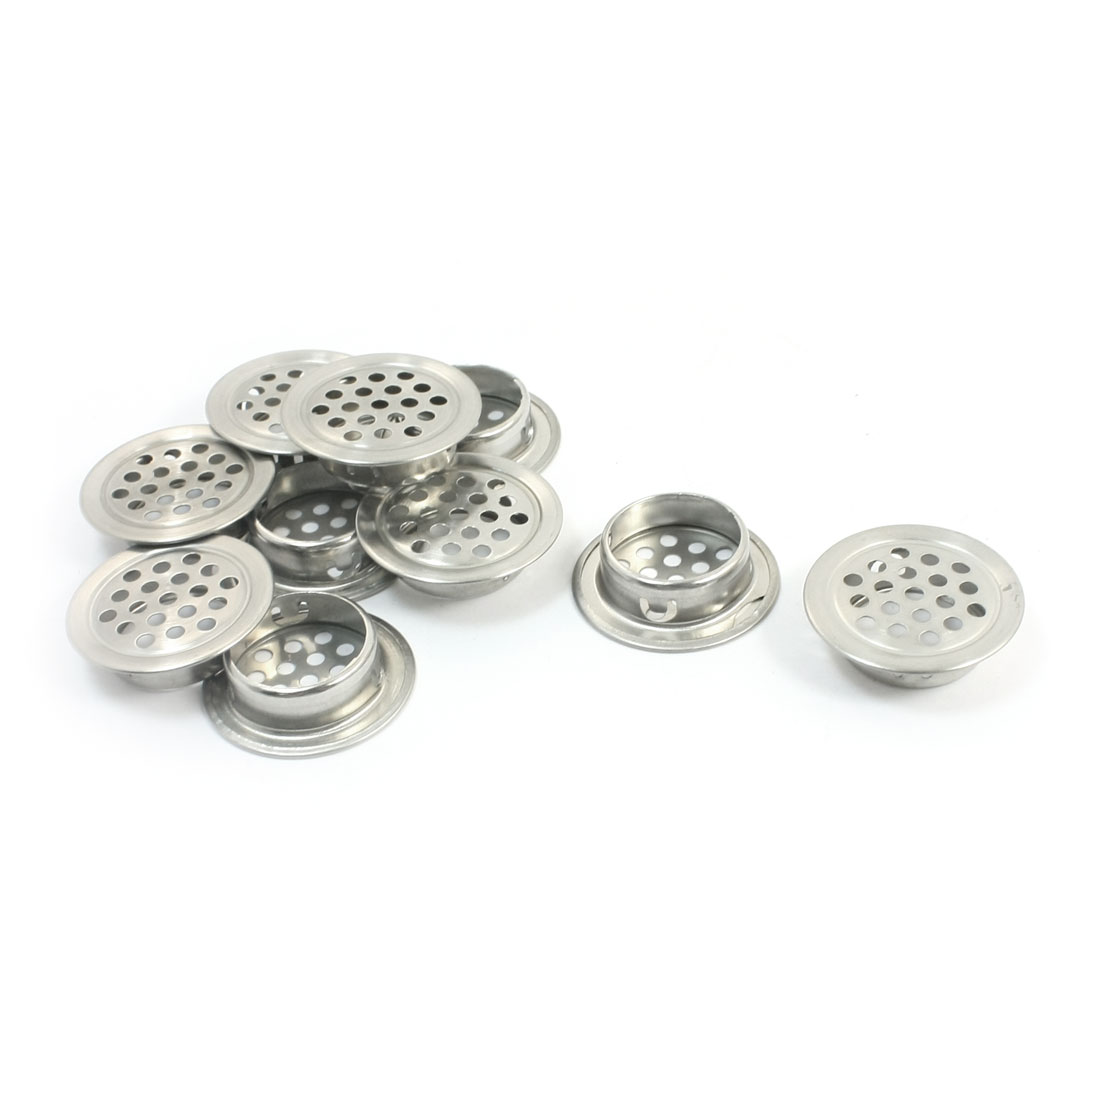 10 Pcs Kitchen 35mm Upper Dia Silver Tone Metal Mesh Air Vent Louver